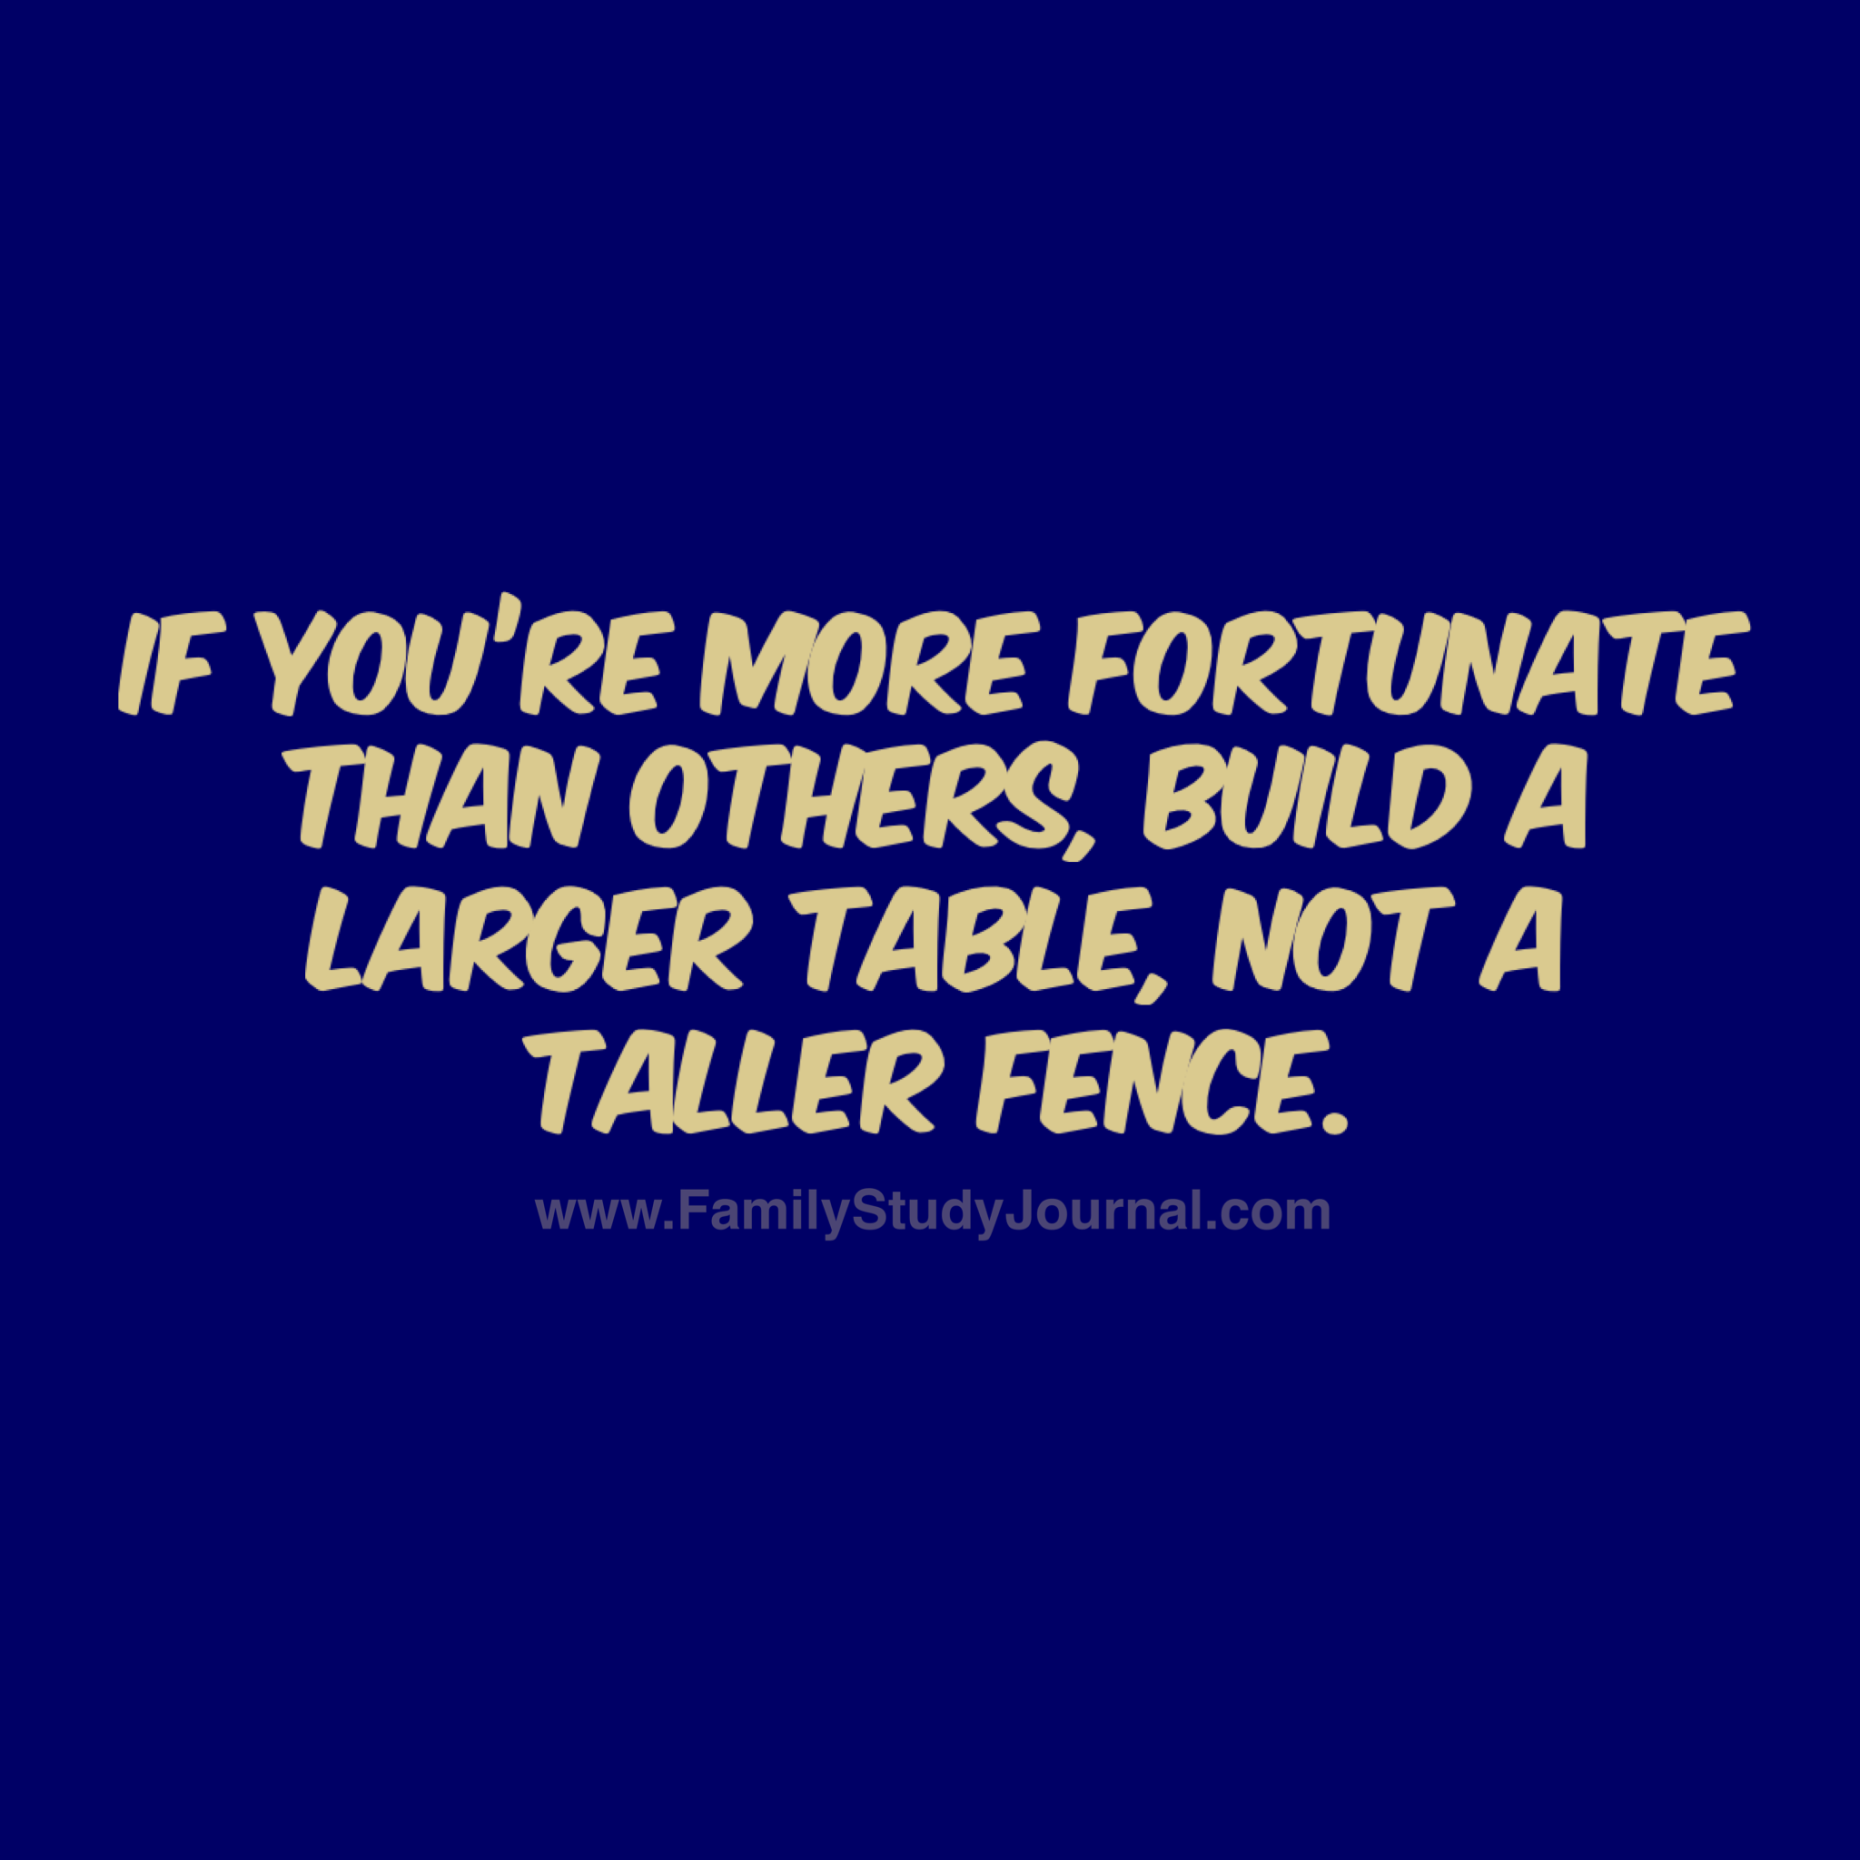 If You Re More Fortunate Than Others Build A Larger Table Not A Taller Fence Fsj Familystudy Some Inspirational Quotes Encouragement Quotes Mindset Quotes